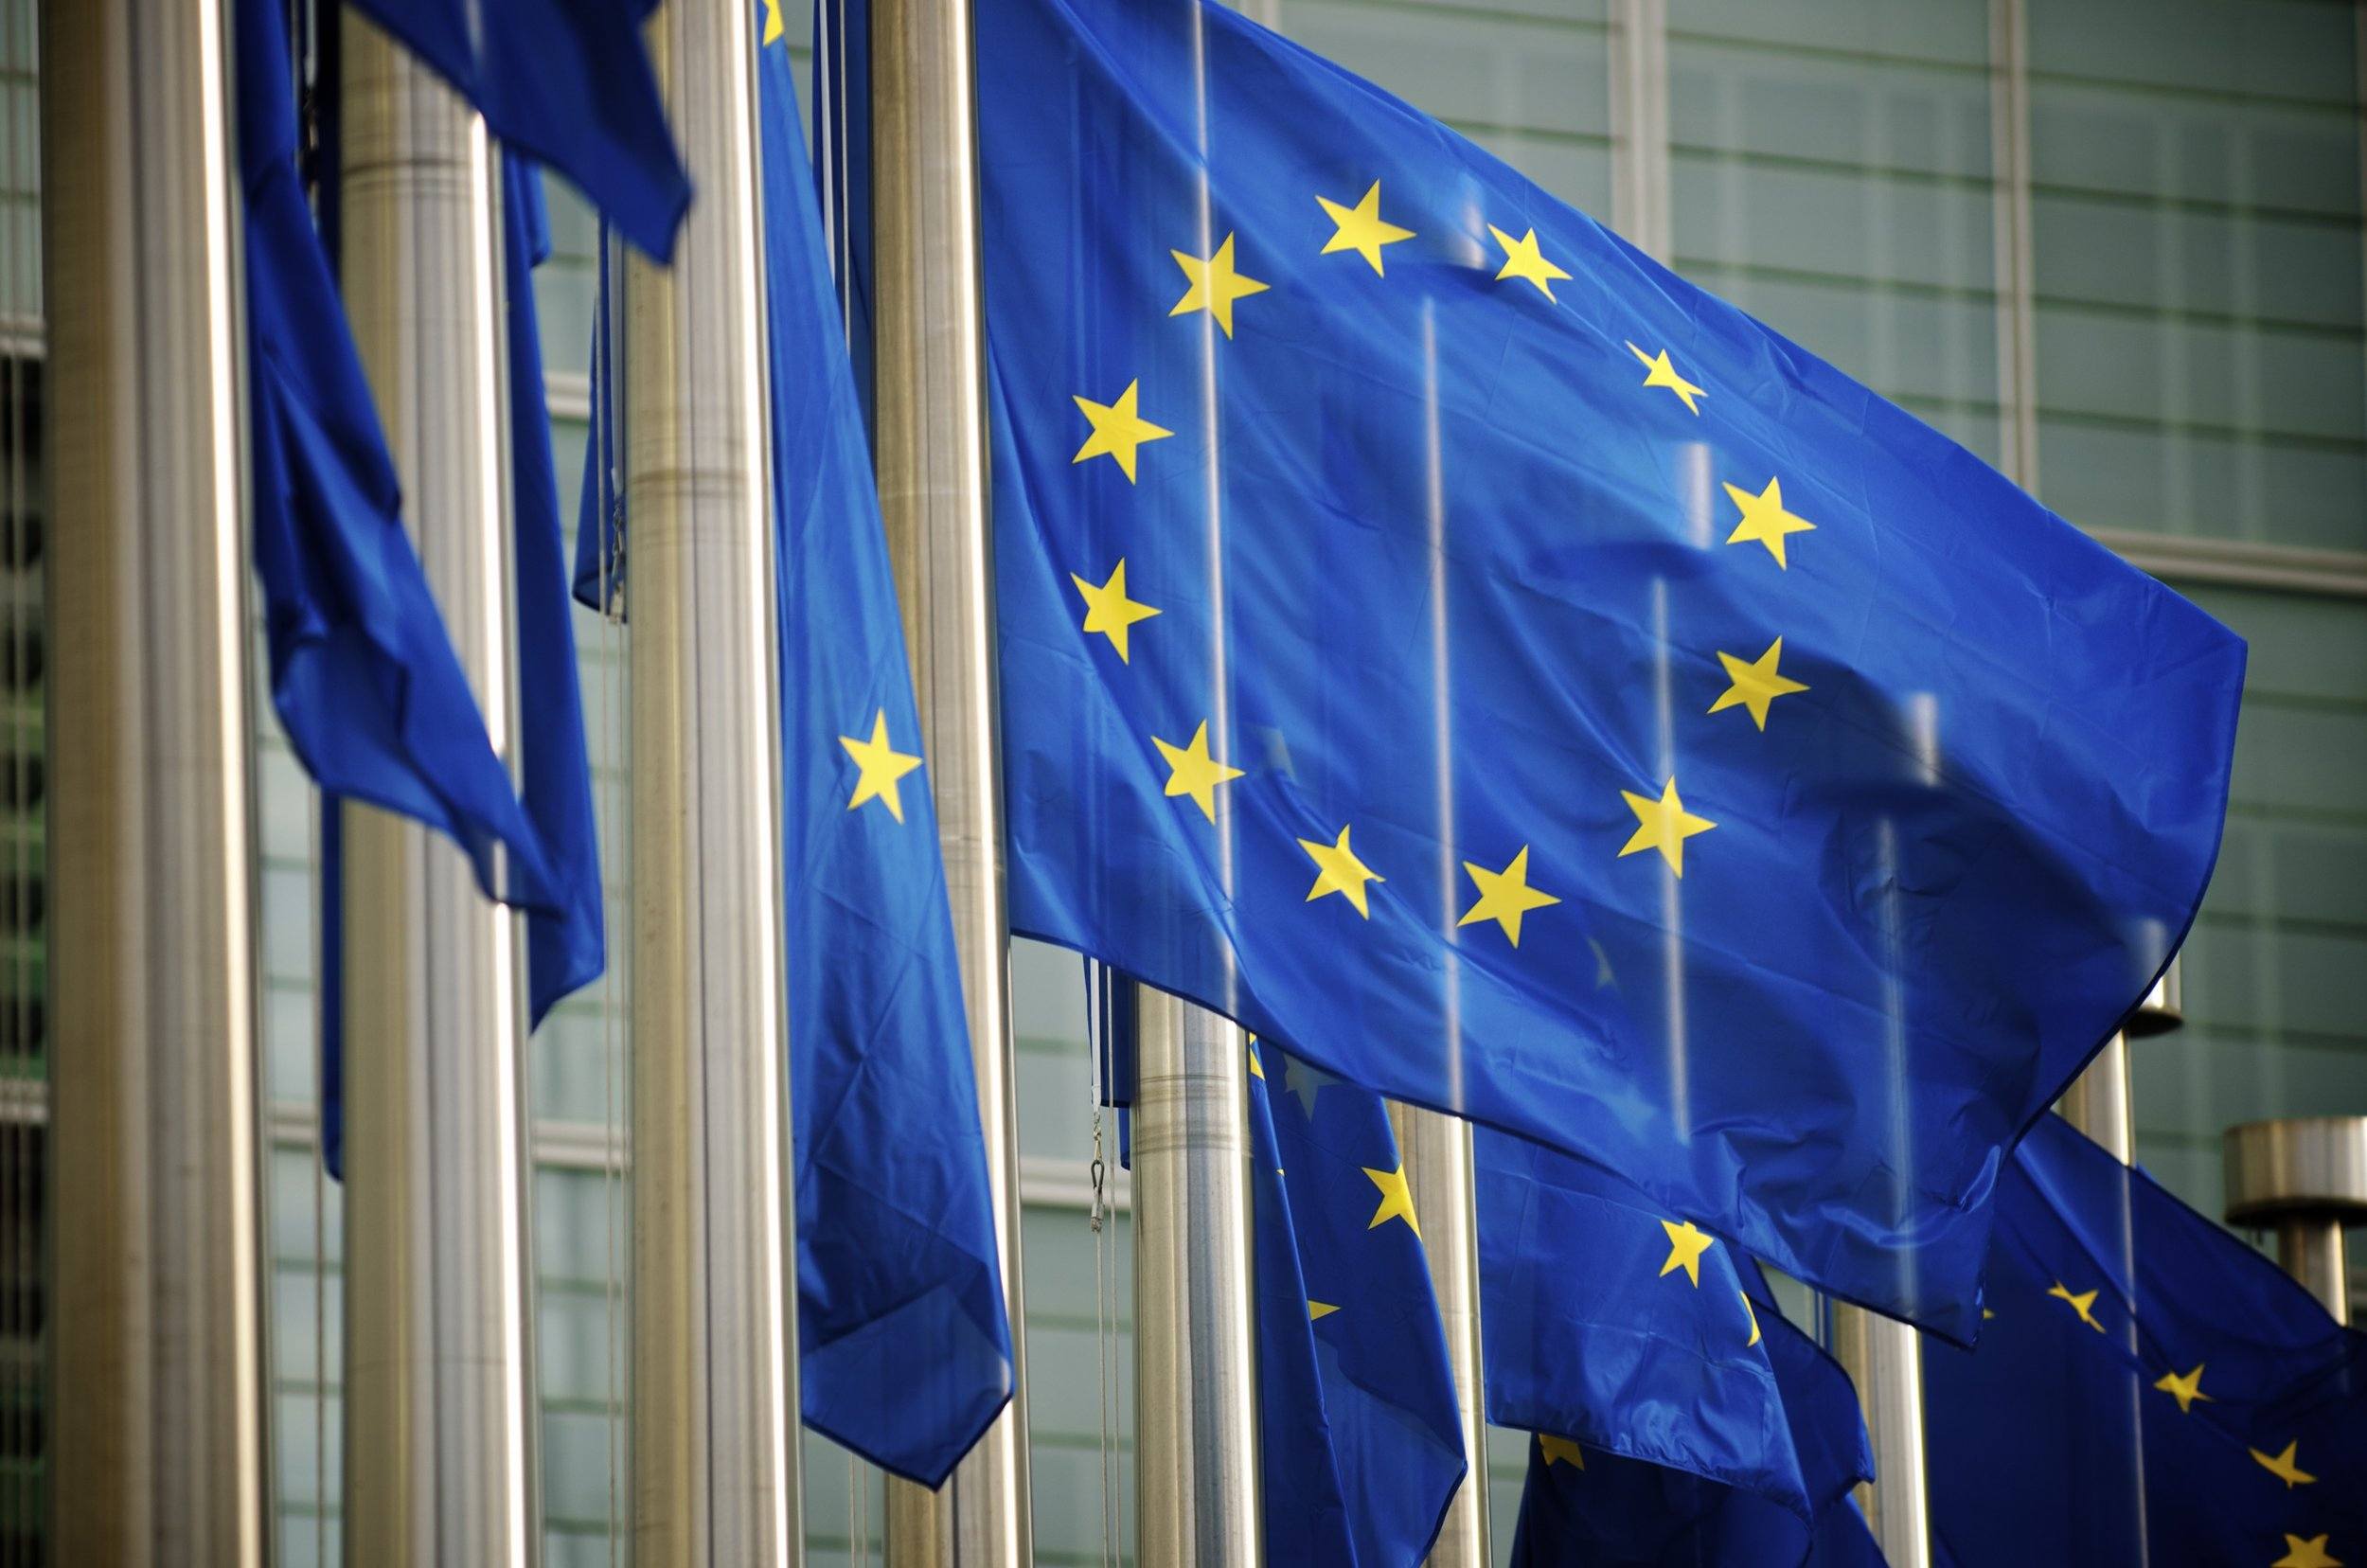 EU-Flags_Brussels.jpg